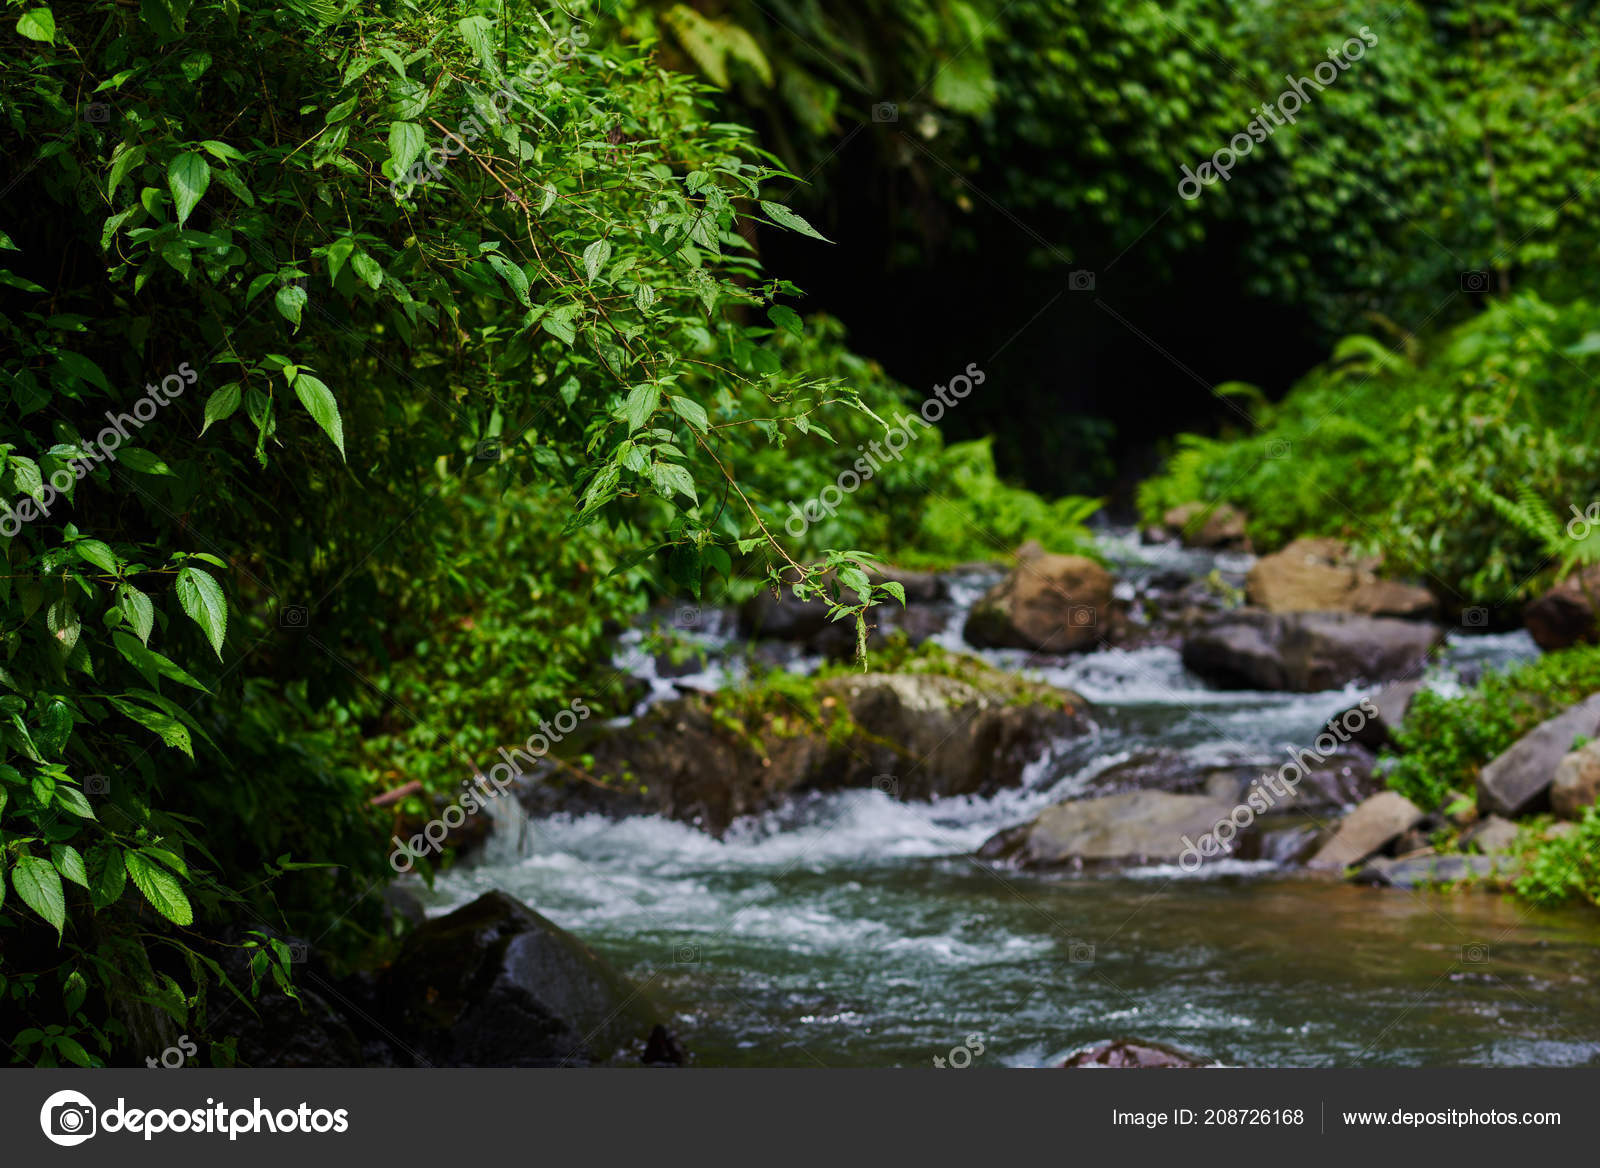 Pictures Streams In The Forest River Water Rocks Forest